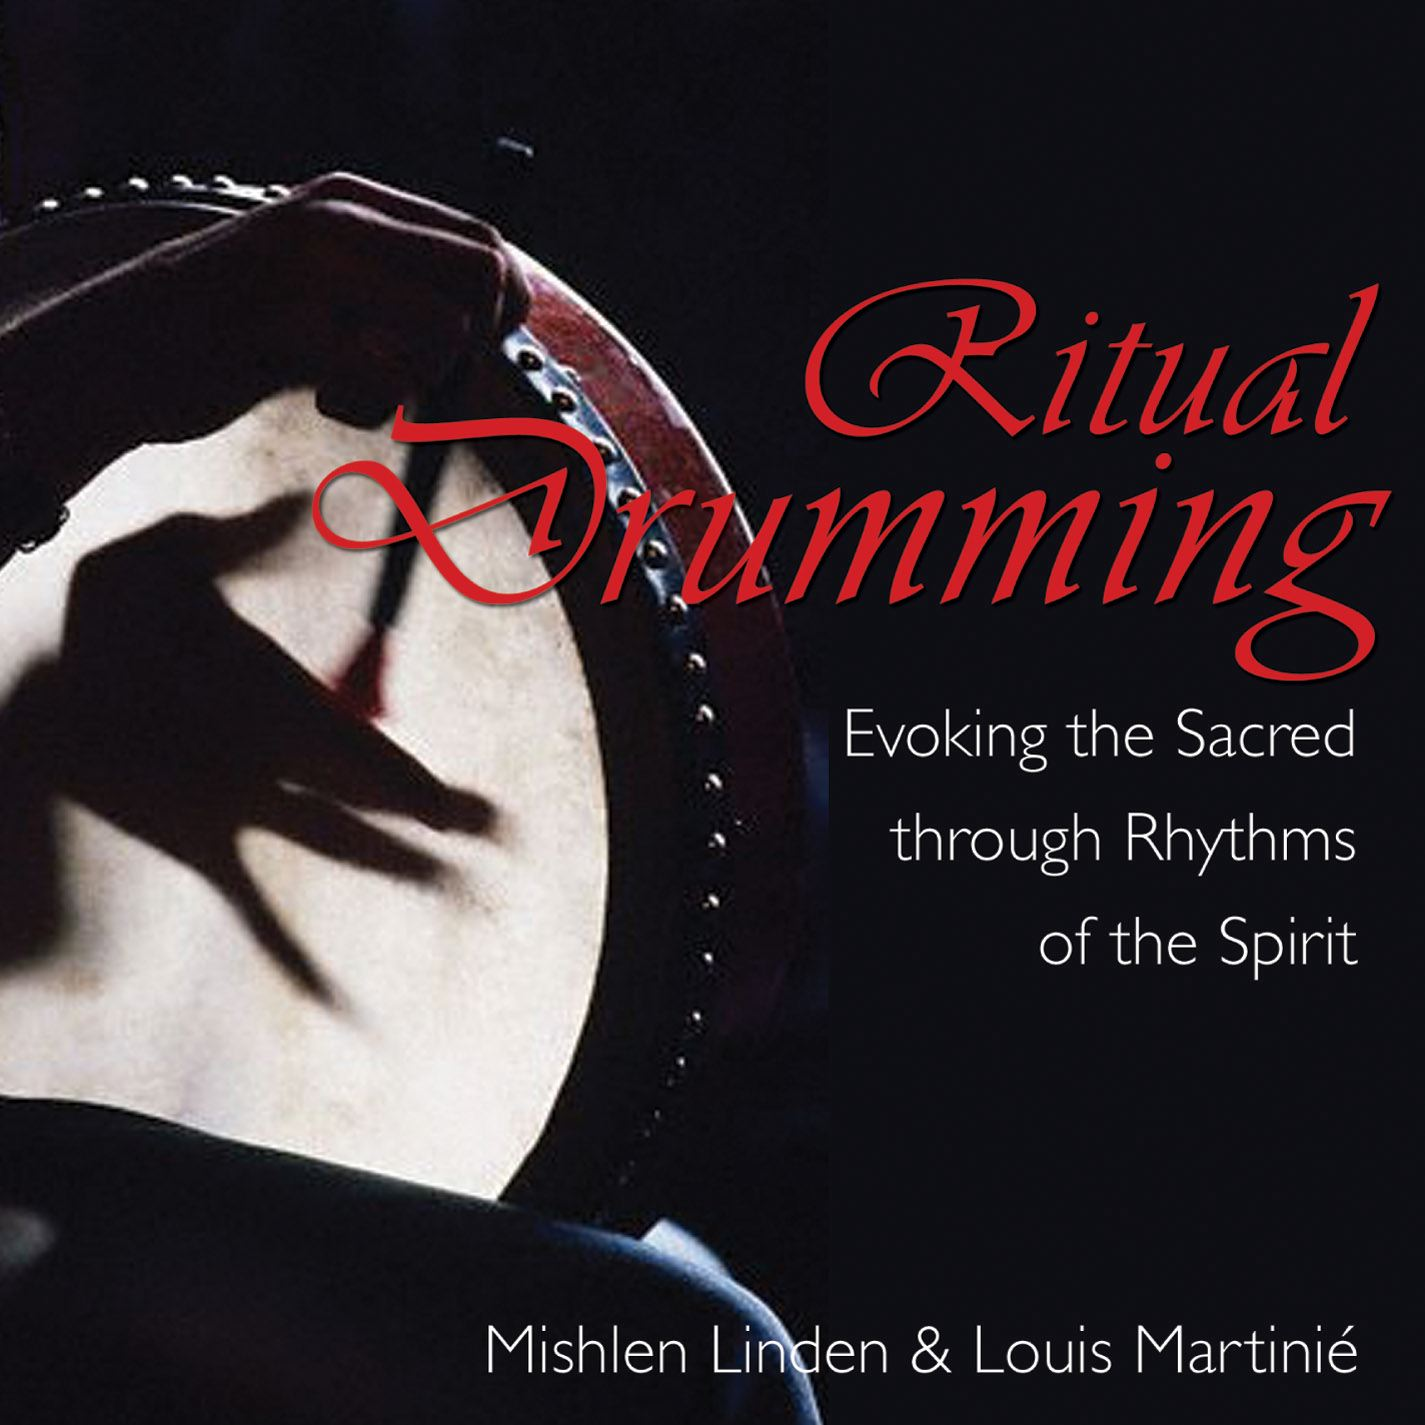 Ritual-drumming-9781594770722_hr